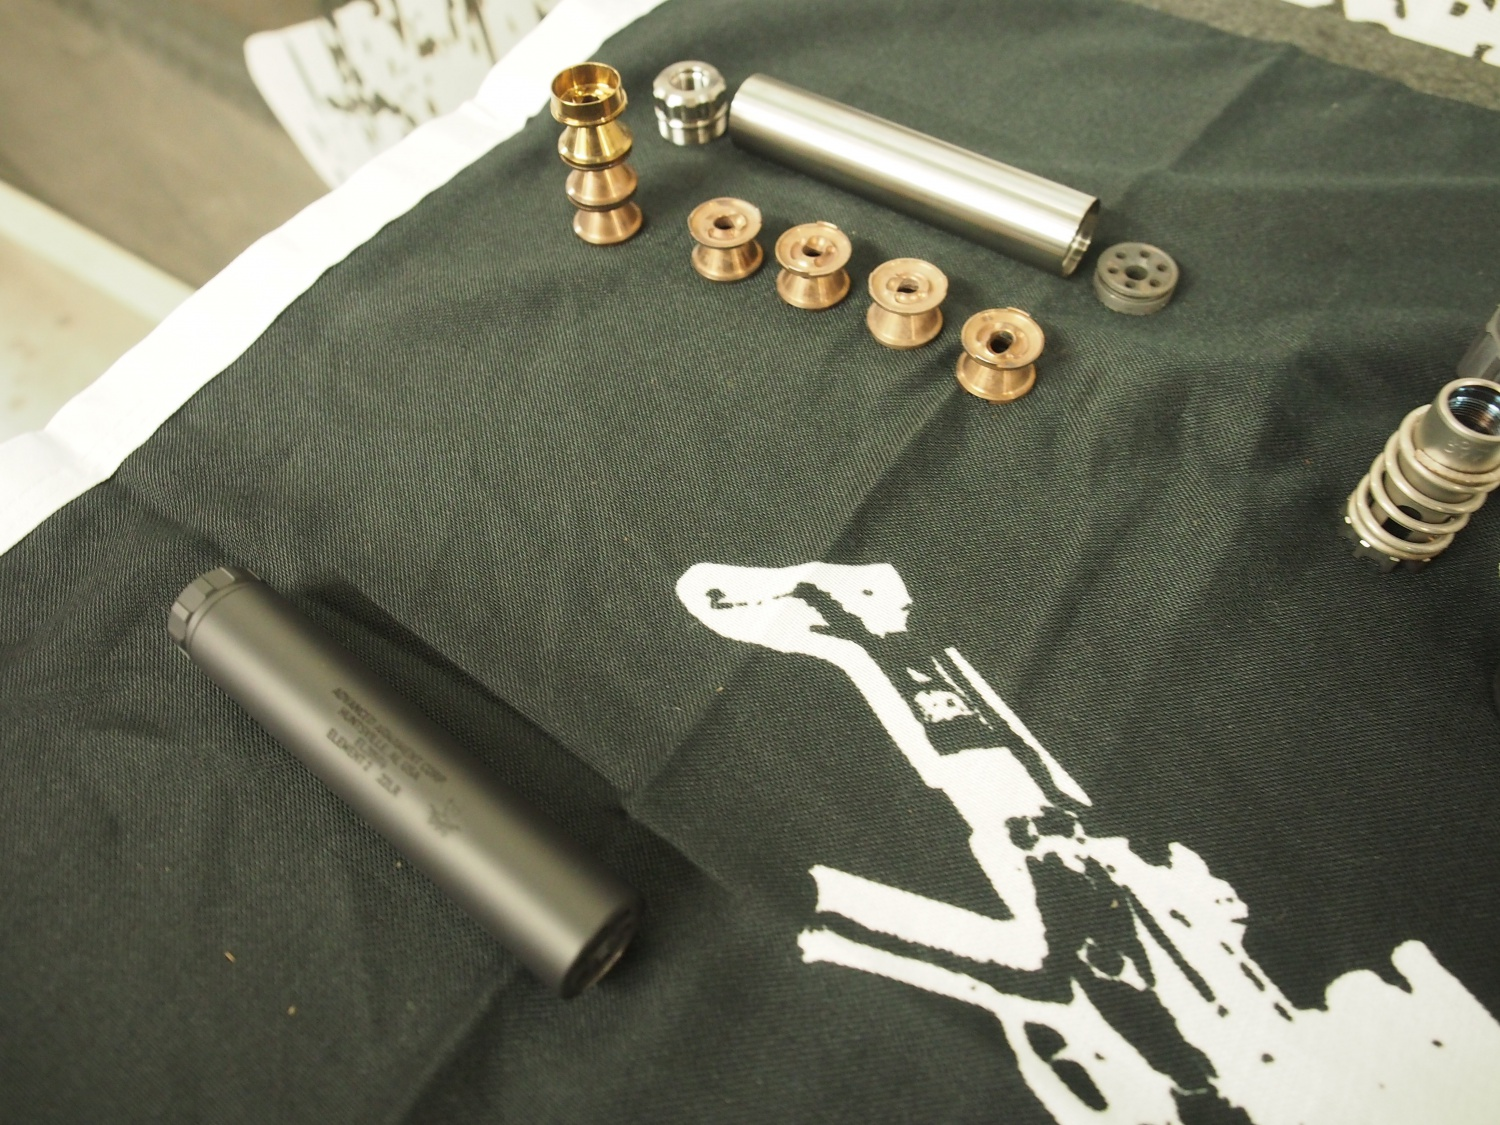 AAC suppressor disassembled